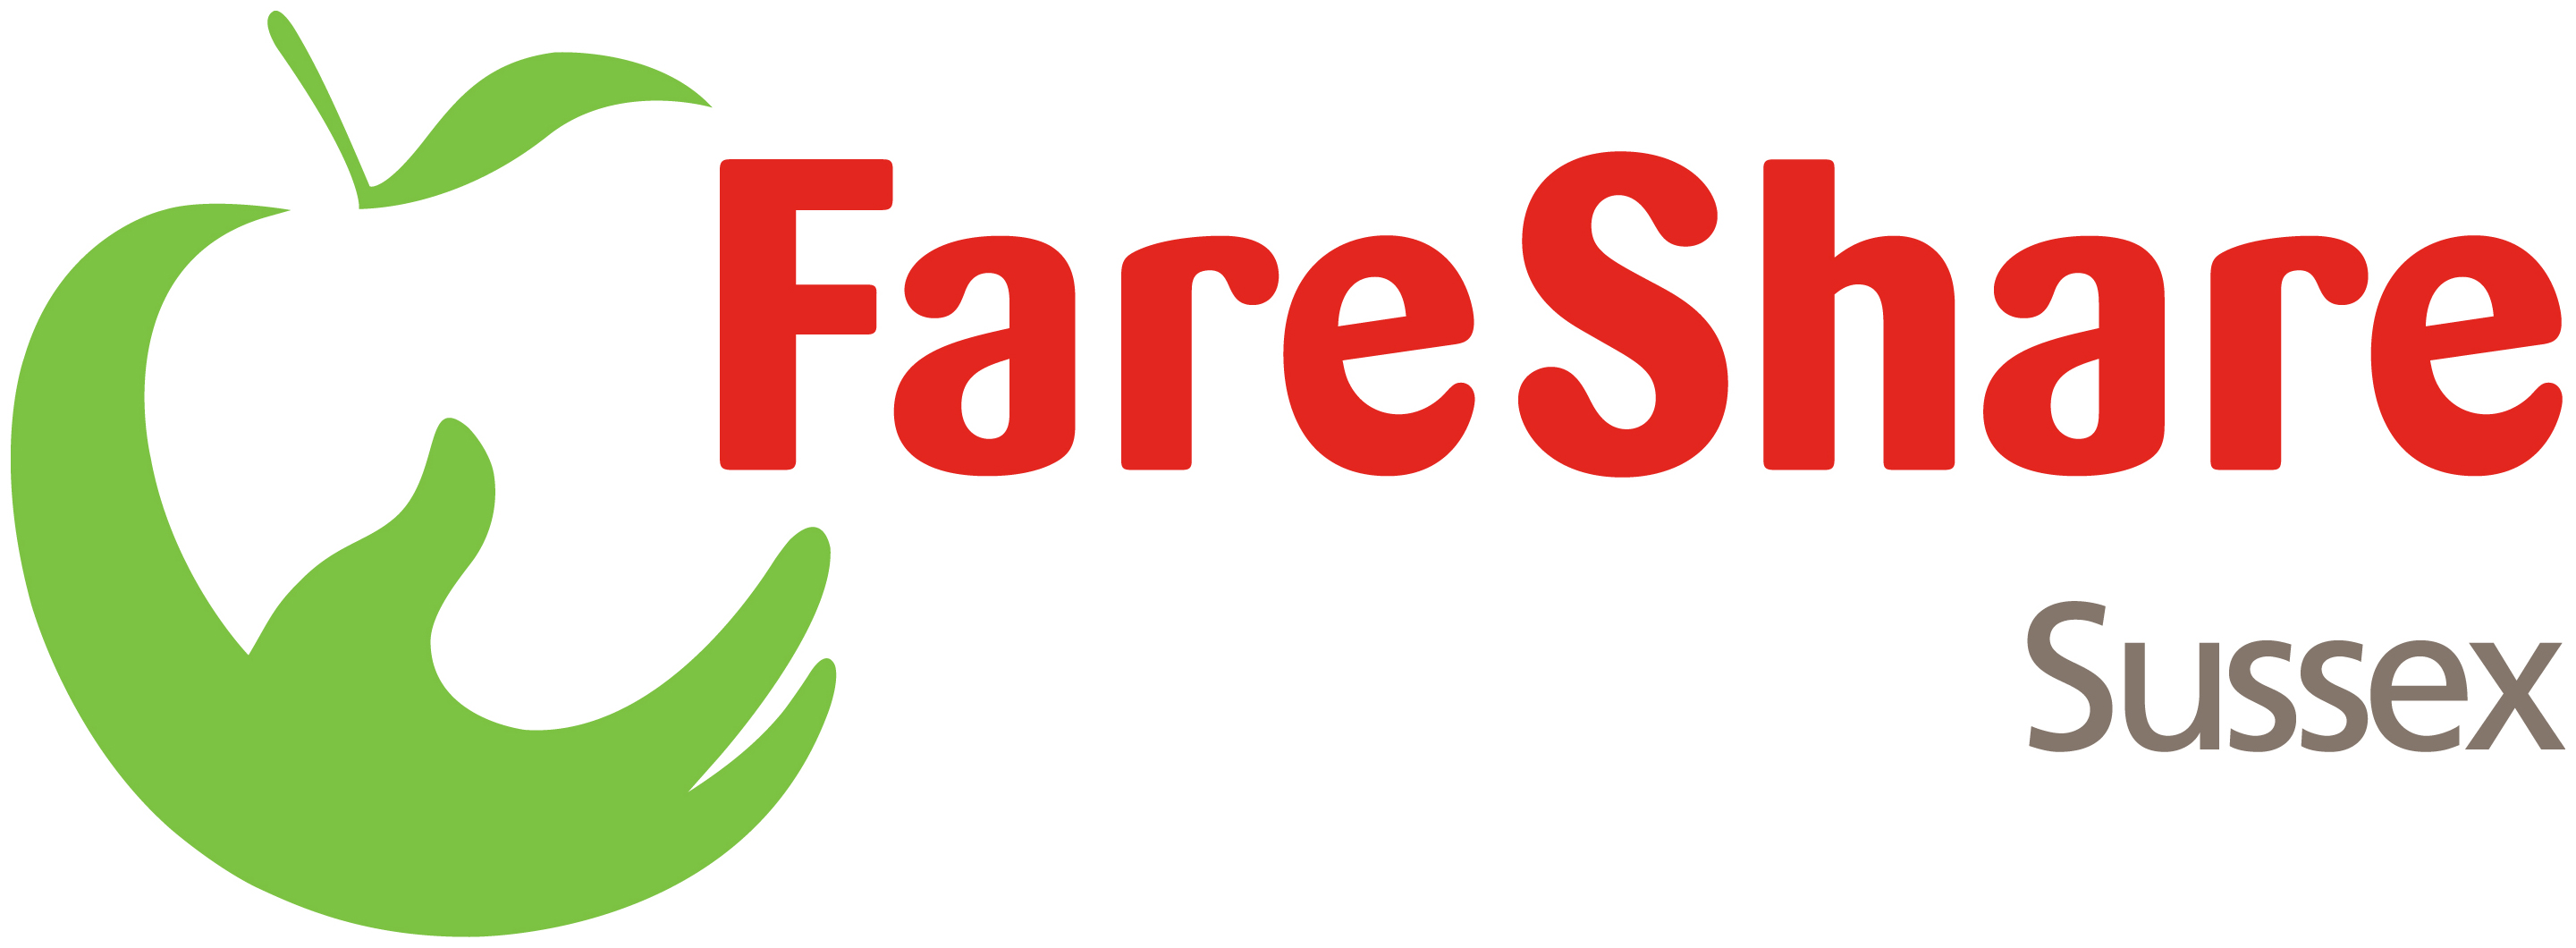 Fairshare Sussex